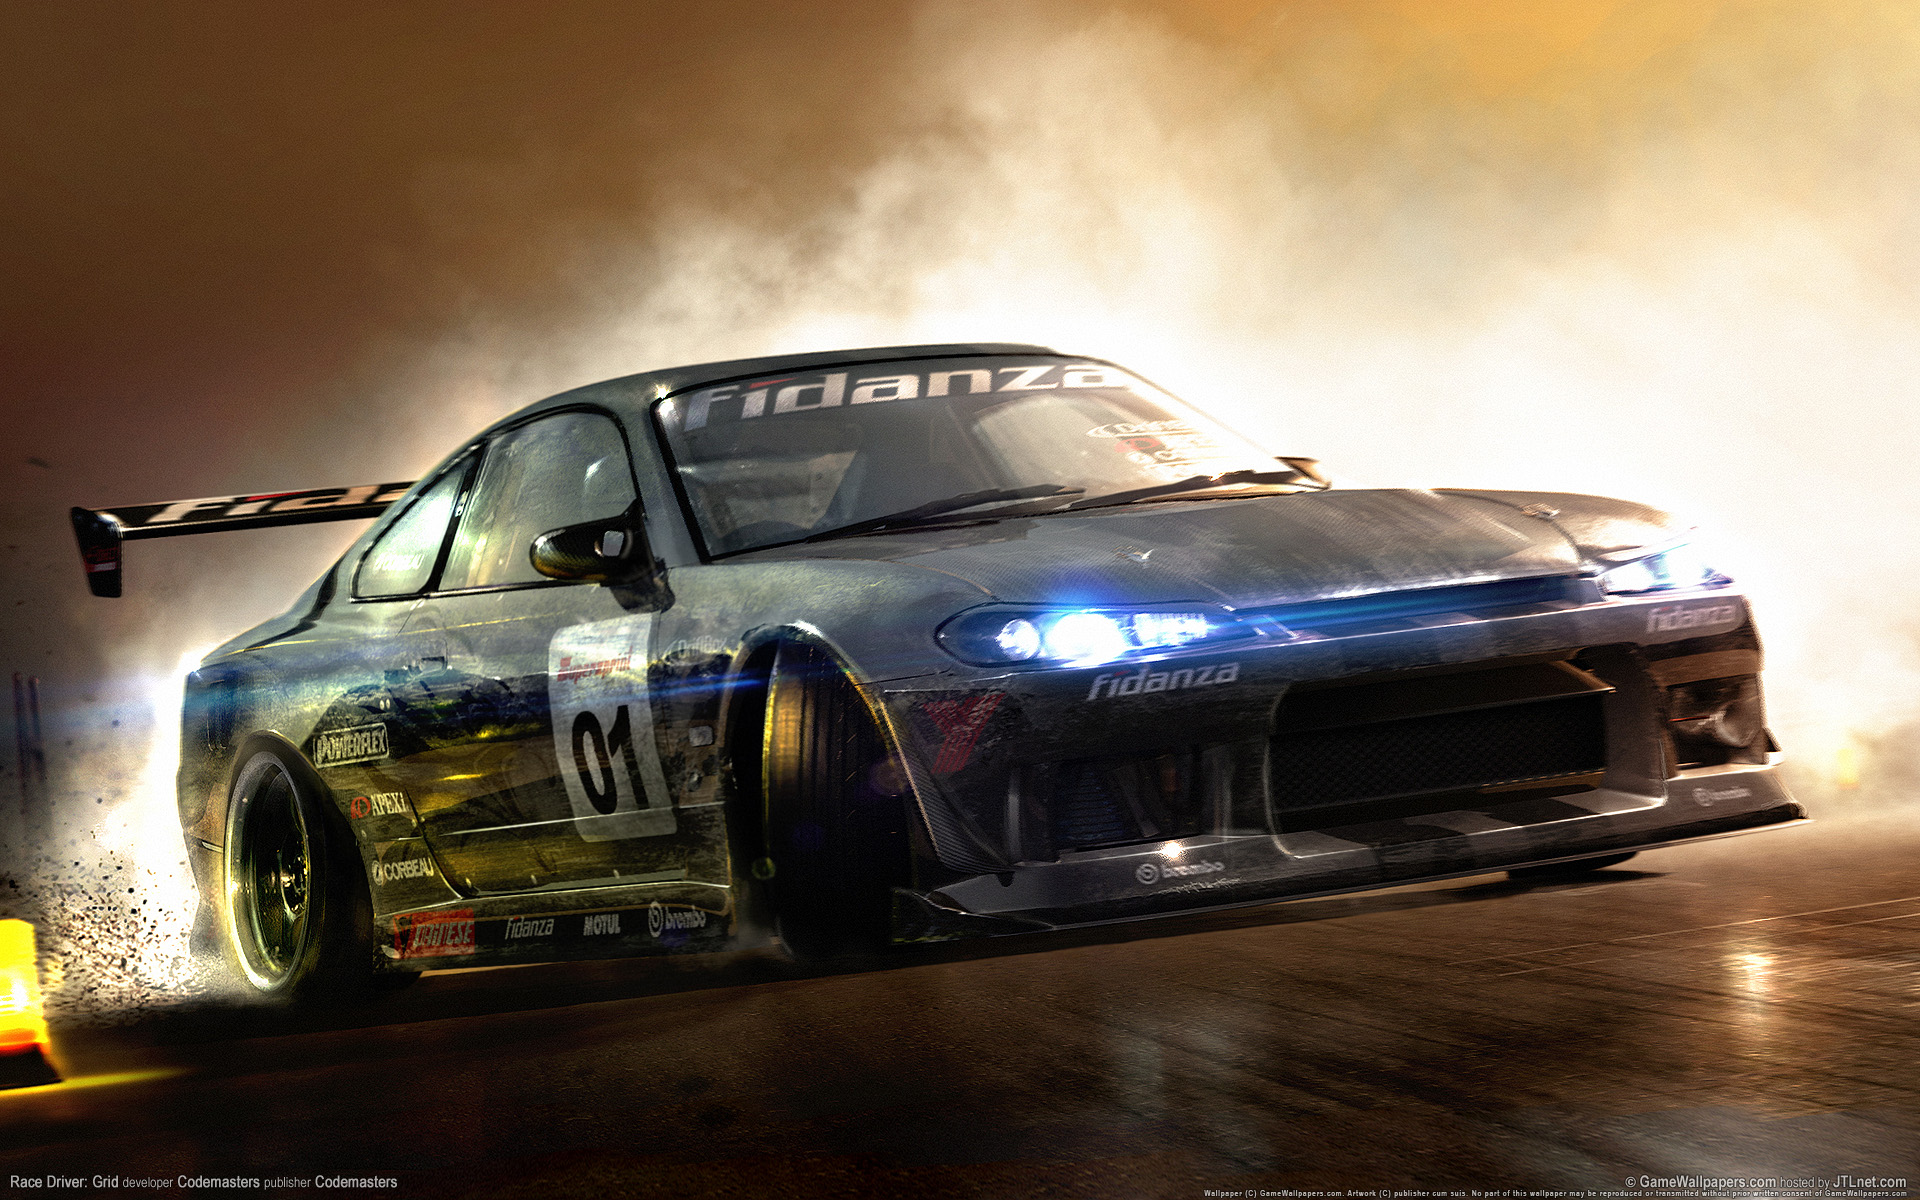 HD Gaming Wallpapers Desktop Image 1920x1200